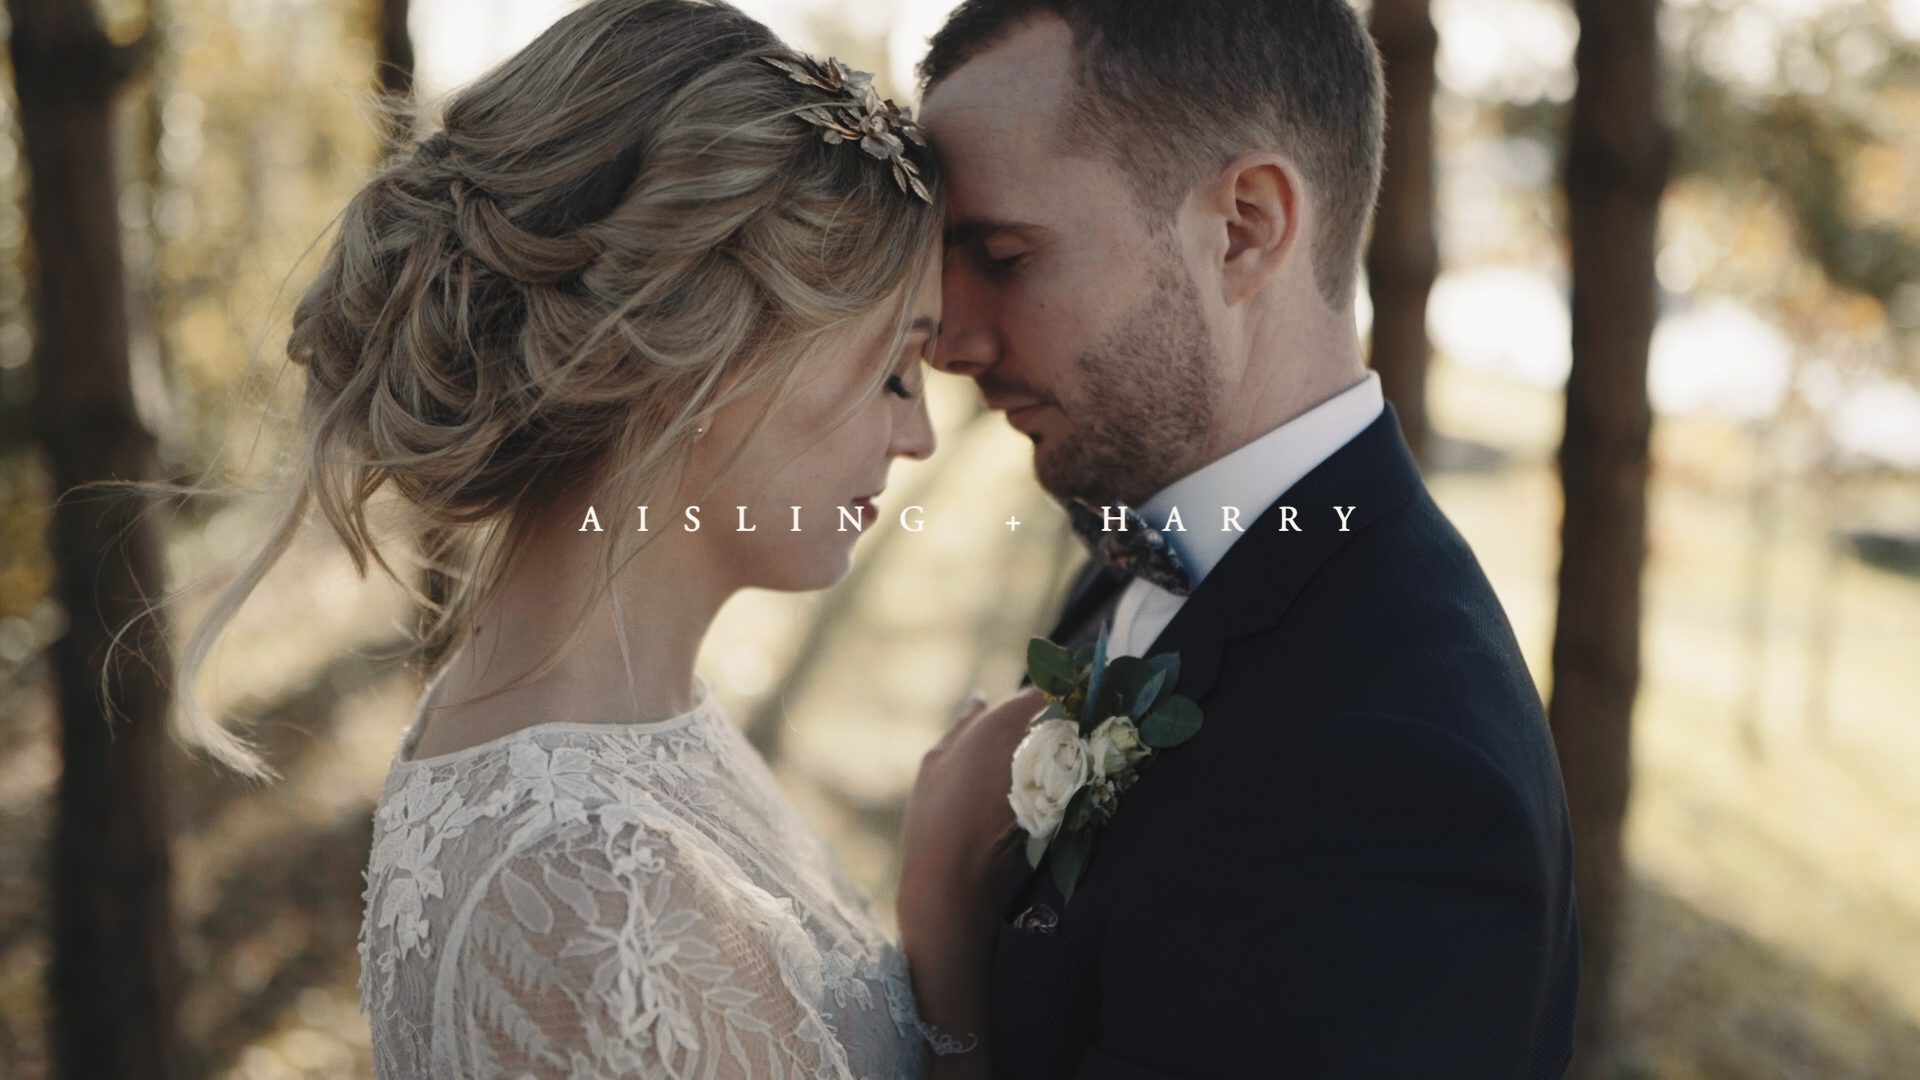 Aisling + Harry | Tipperary, Ireland | Coolbawn Quay